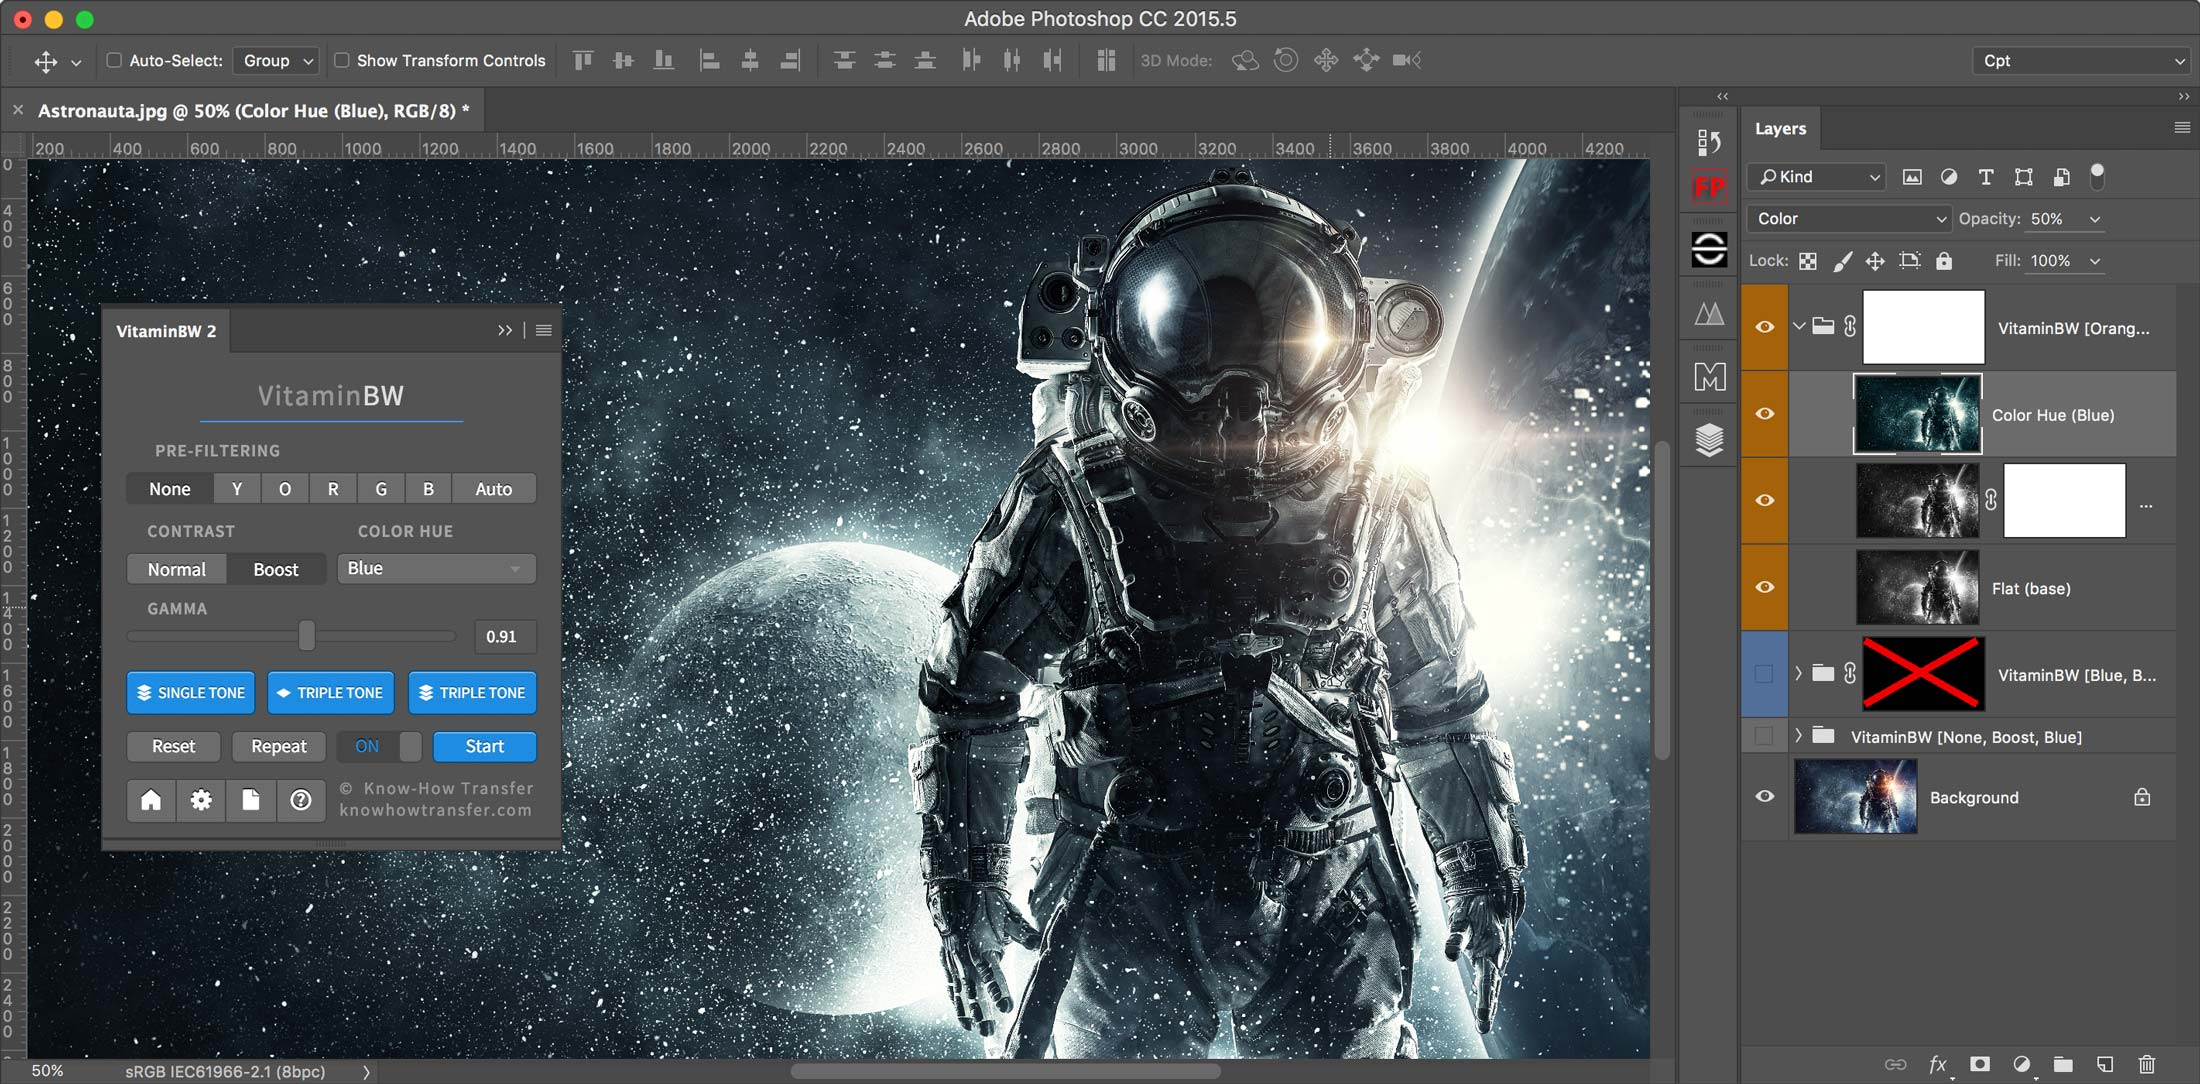 Triple Tone interface in Photoshop